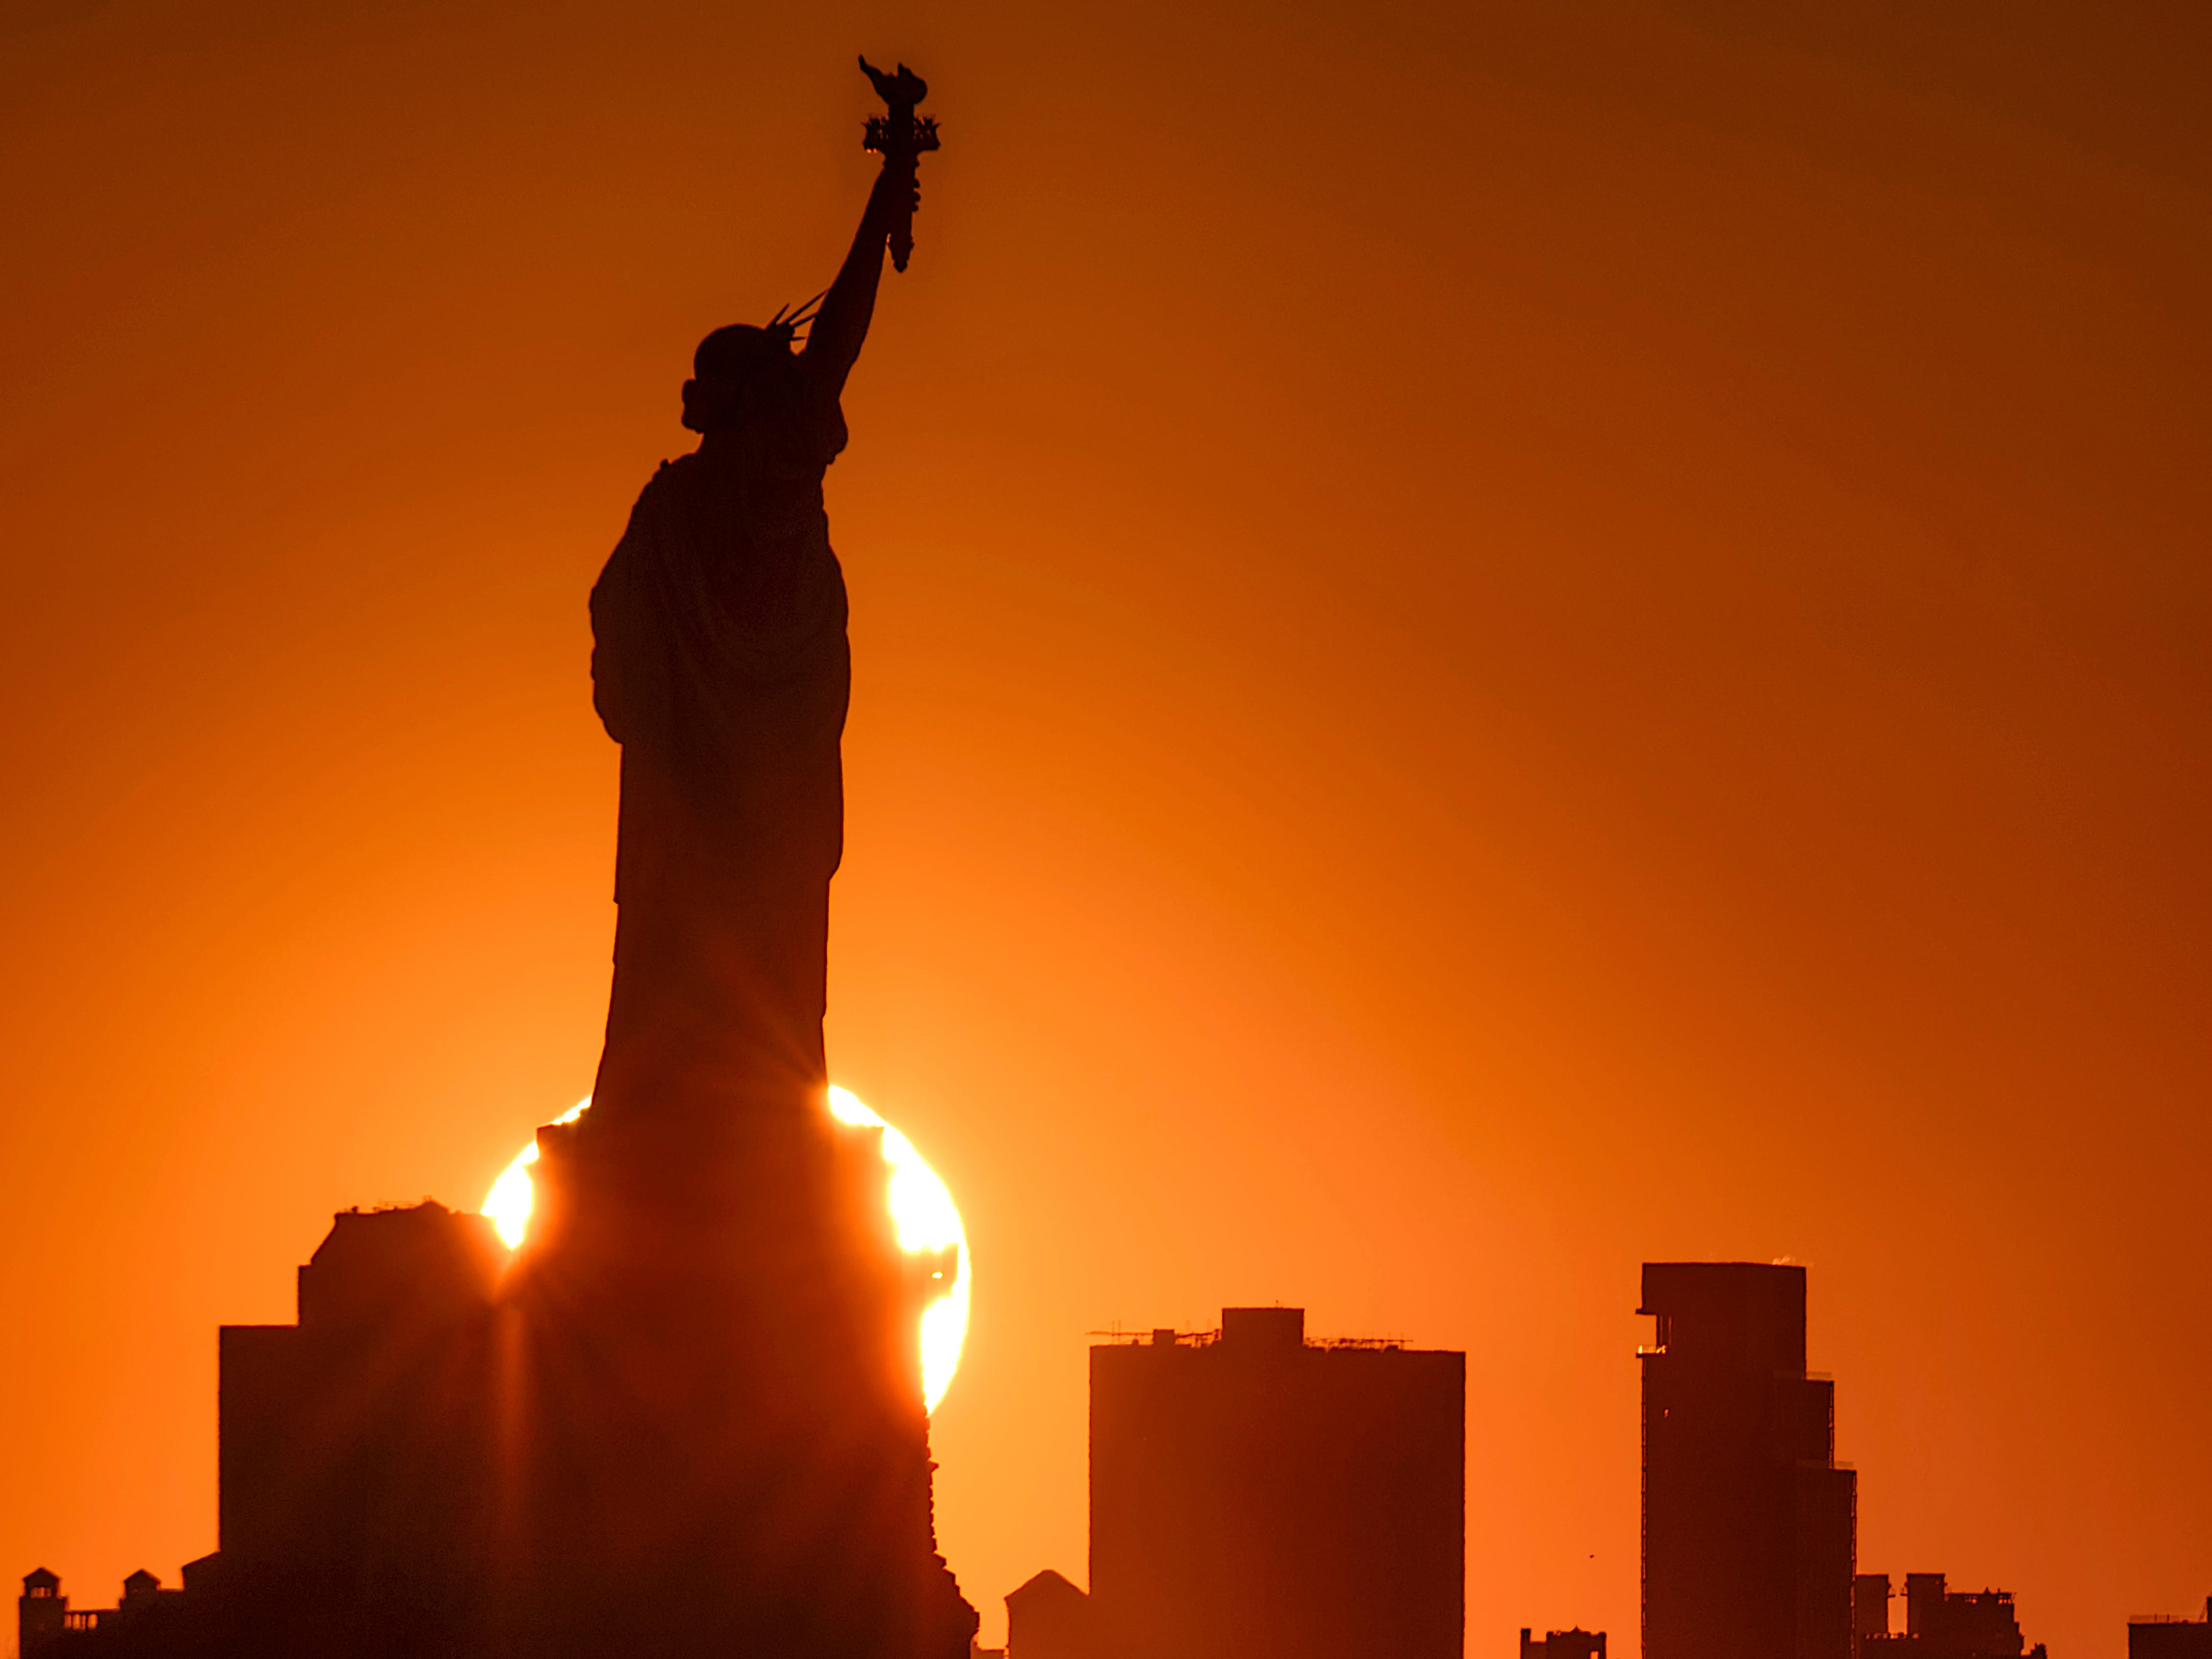 Sunrise behind the Brooklyn borough of New York City silhouettes the Statue of Liberty as captured from Jersey City, N.J., Tuesday, April 16, 2019.